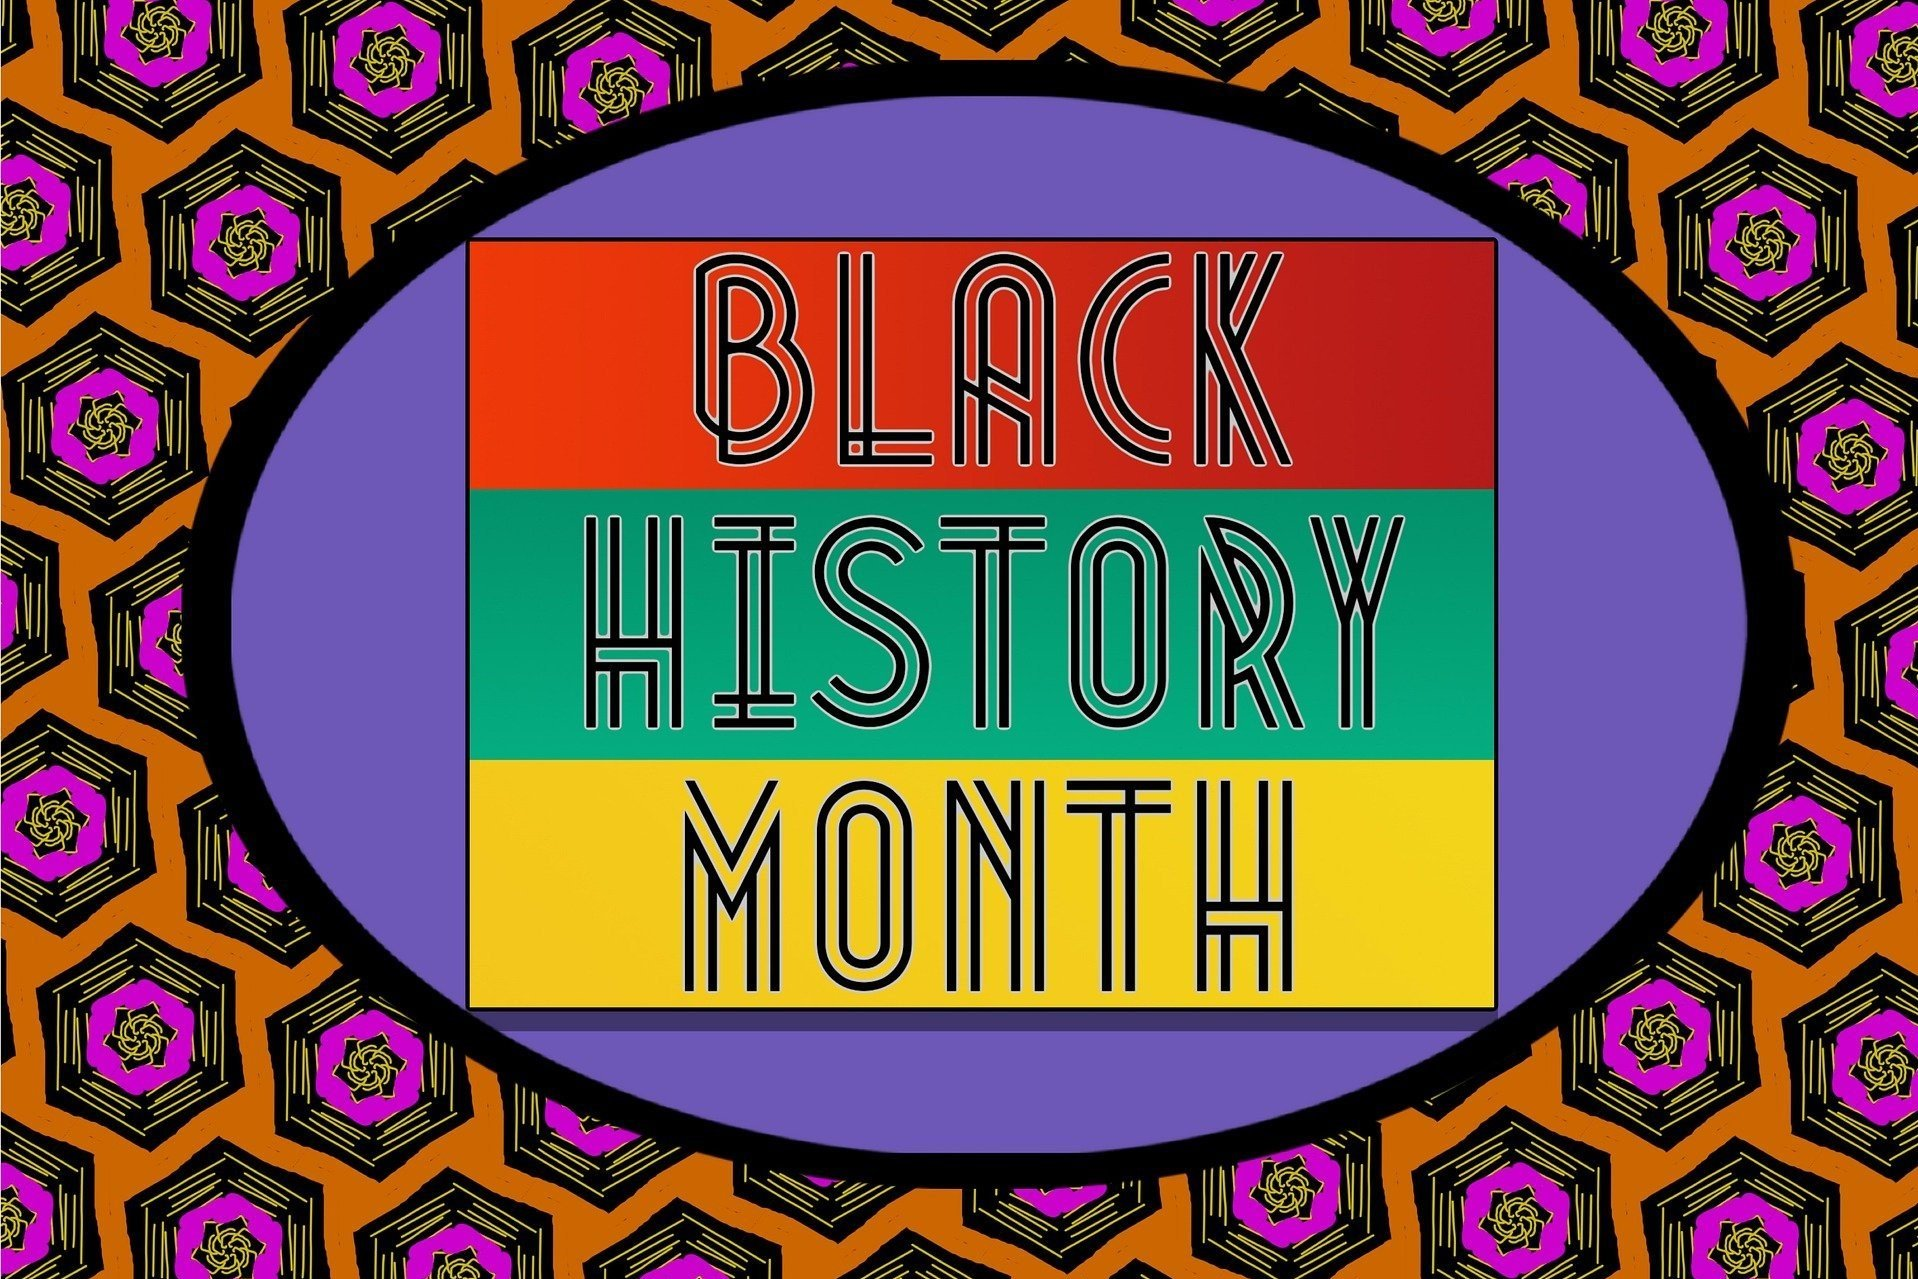 Black History Month graphic with colourful text and pattern